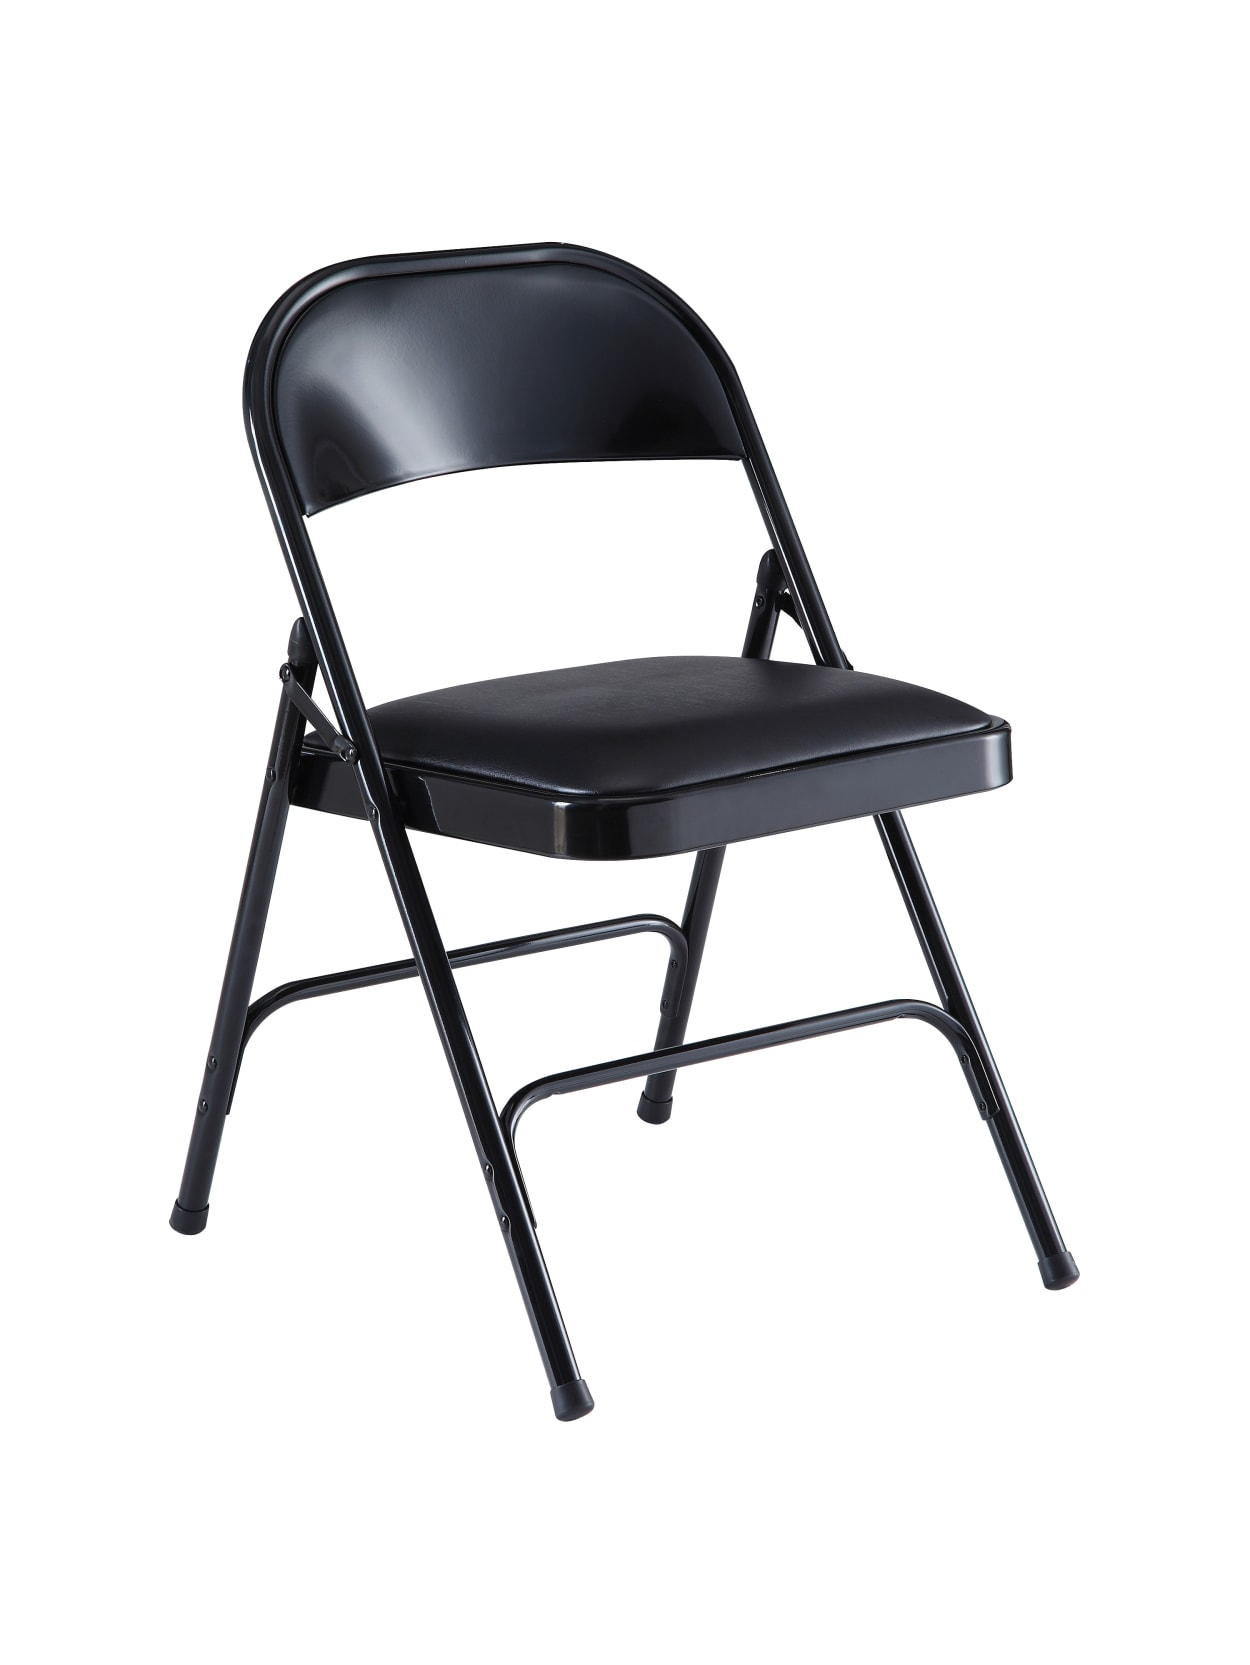 Lorell Vinyl Padded Folding Chairs Black Set Of 4 Chairs Office Depot